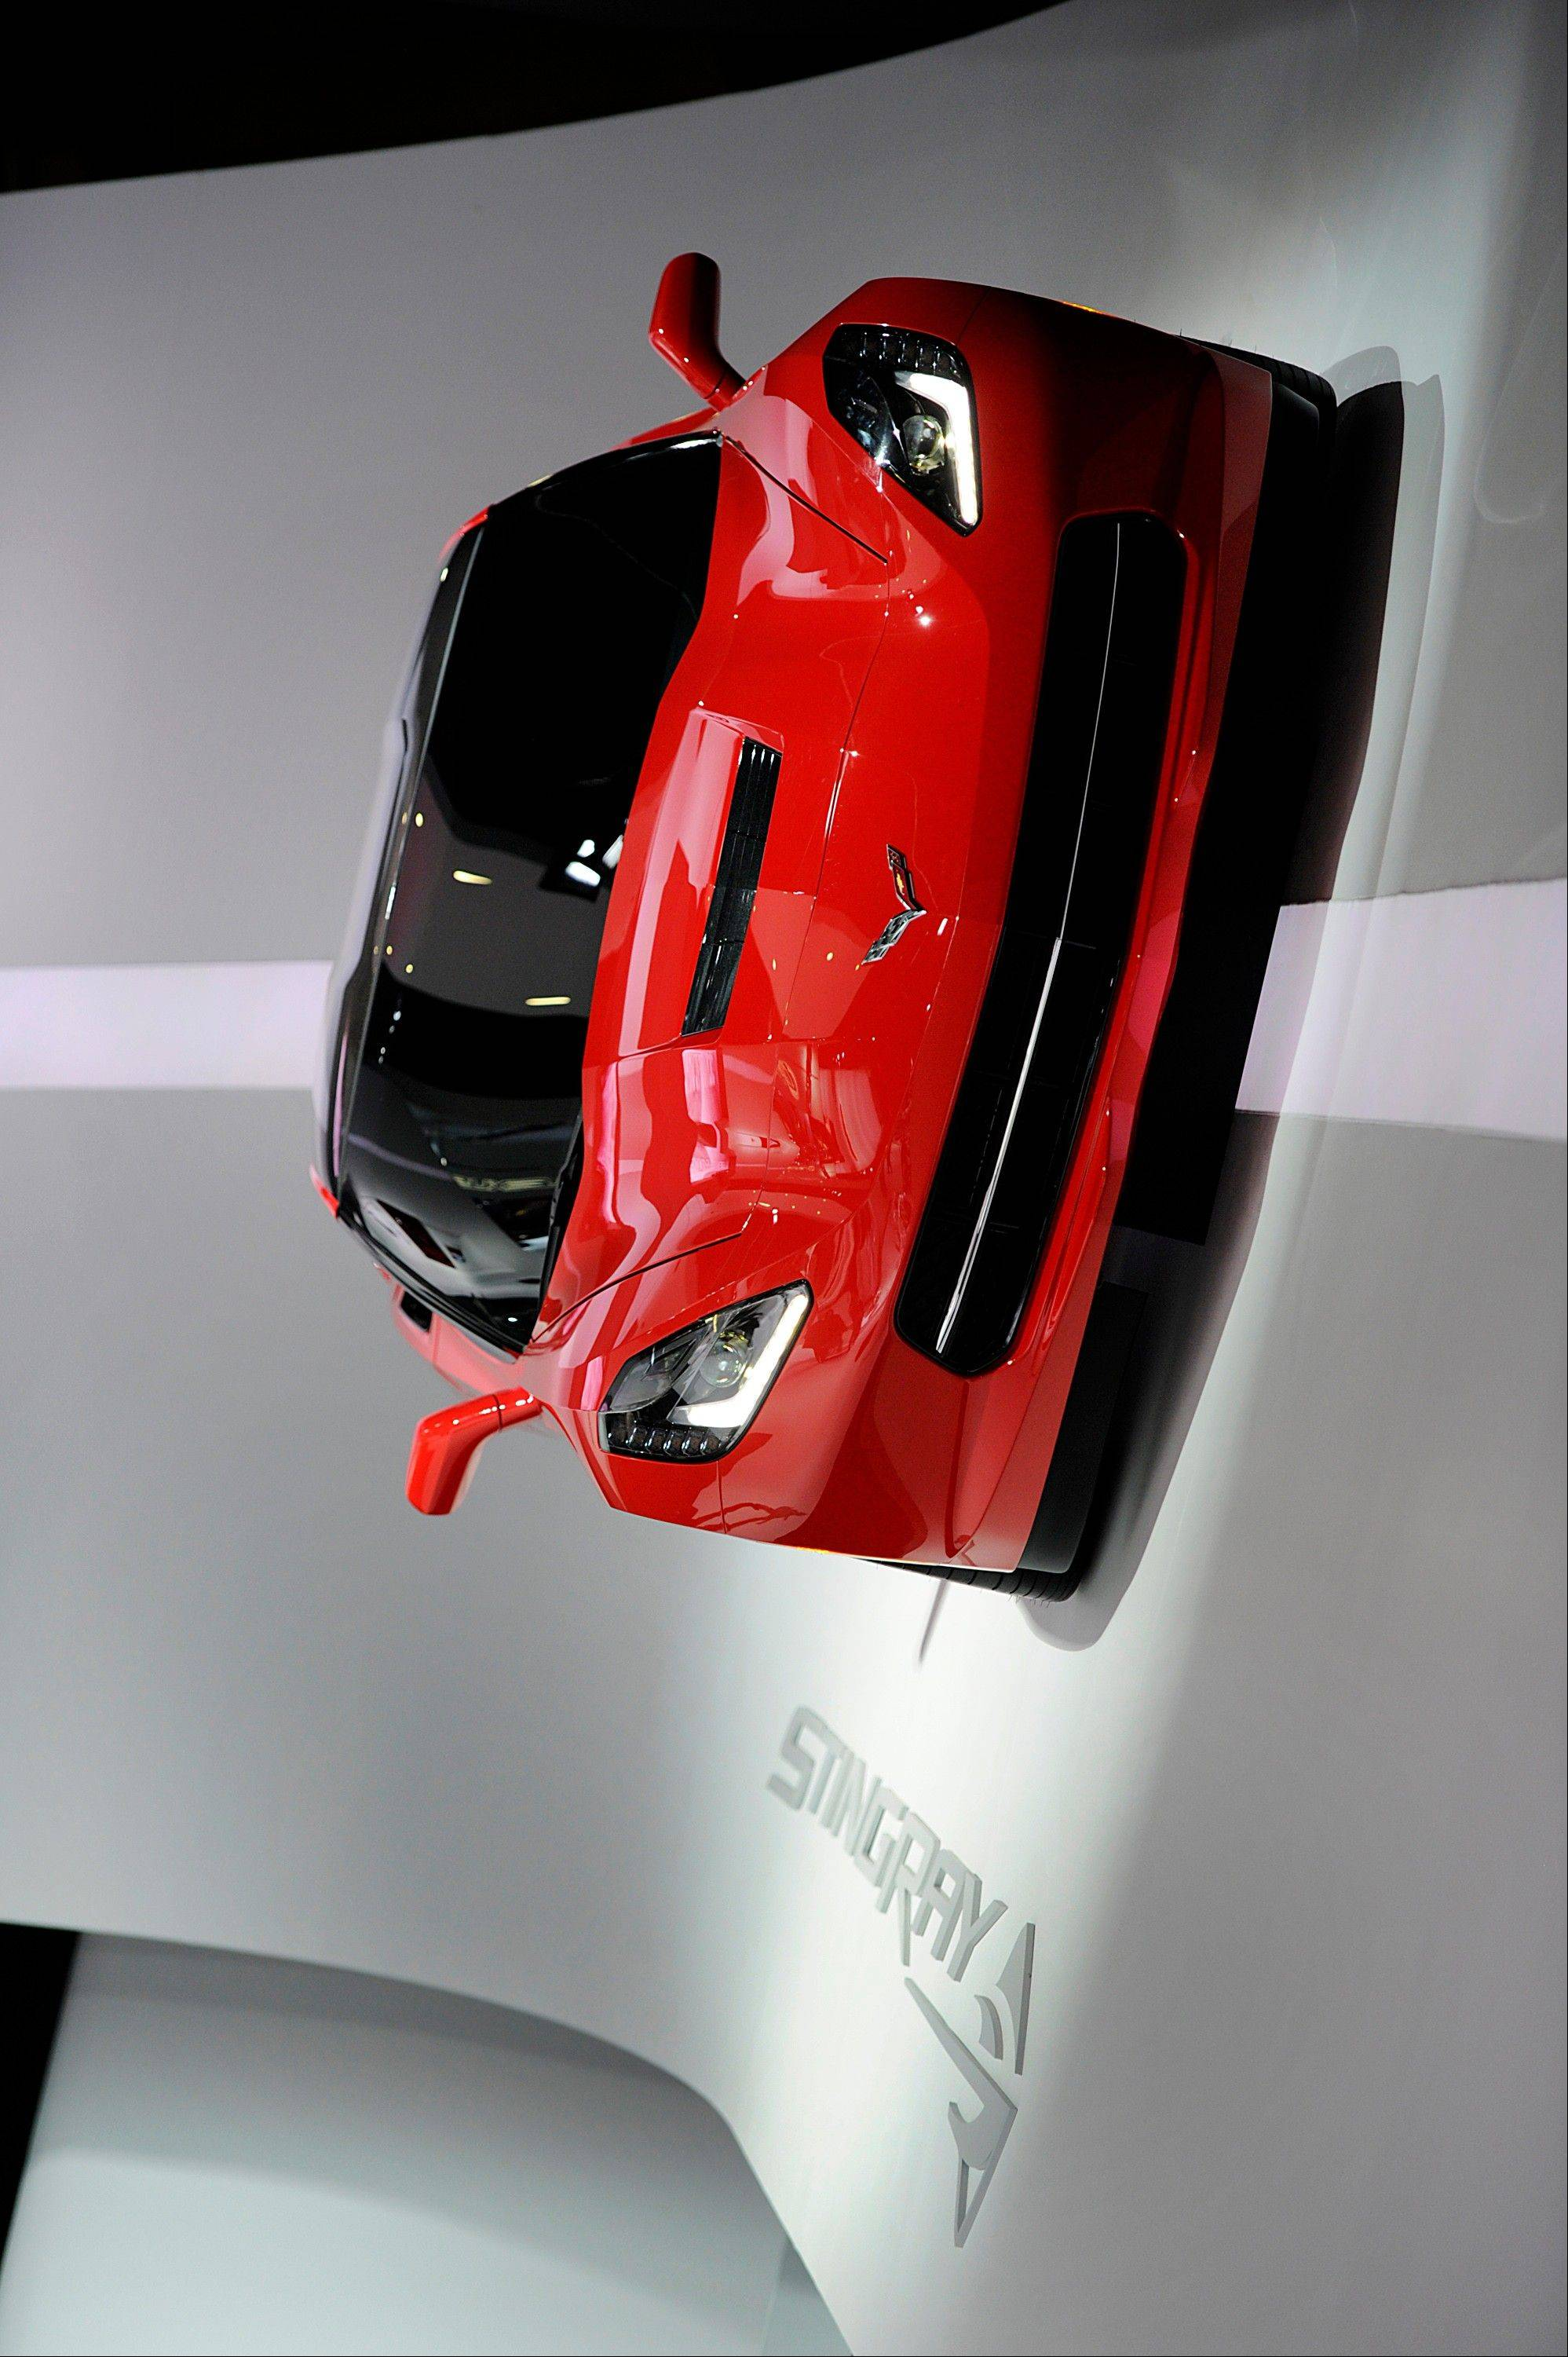 The 2014 Chevrolet Corvette Stingray is displayed on a wall during the 2013 North American International Auto Show (NAIAS) in Detroit, Michigan, U.S., on Tuesday, Jan. 15, 2013. The Detroit auto show runs through Jan. 27 and will display over 500 vehicles, representing the most innovative designs in the world.